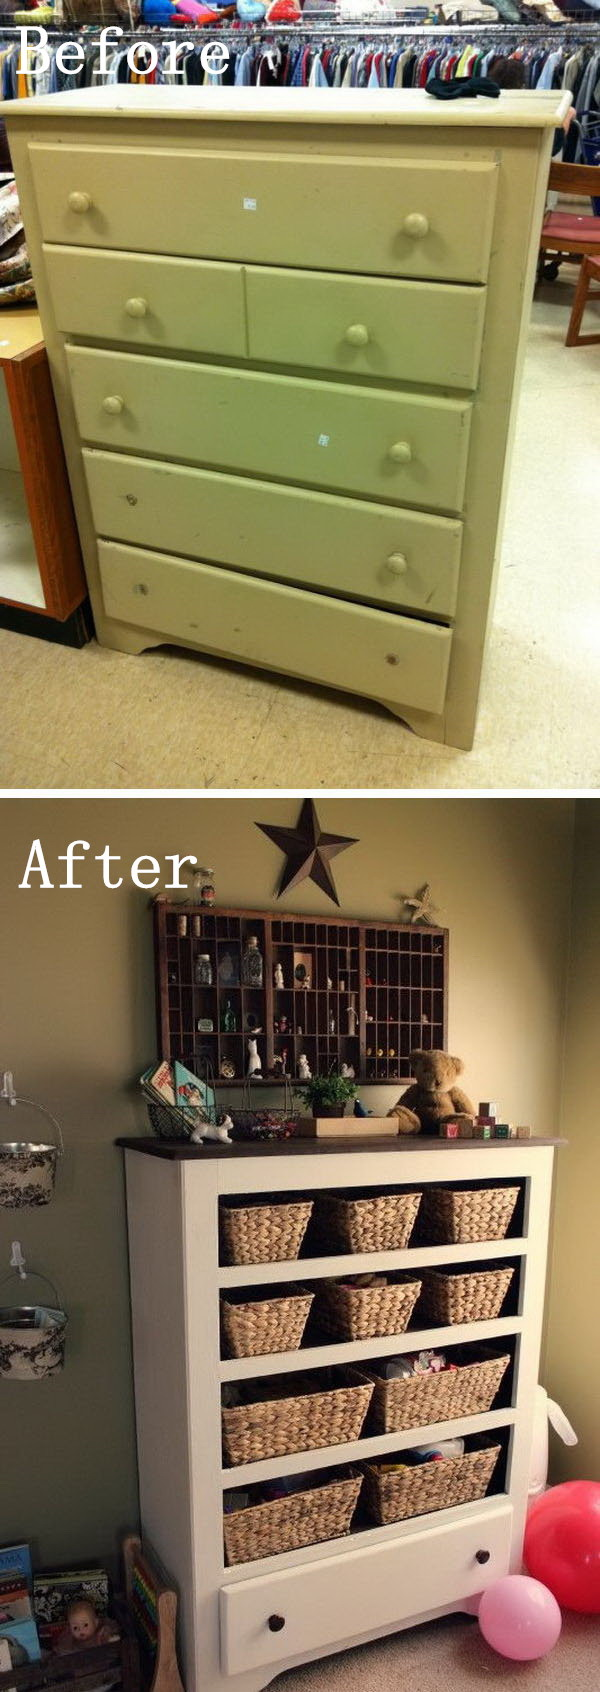 Diy Repurposed Furniture Ideas Diy Projects Diy Furniture Makeovers Thrift Store Drawer Repurposed Into Funny Functional Storage Listing More Best Of Before After Furniture Makeovers Creative Diy Ways To